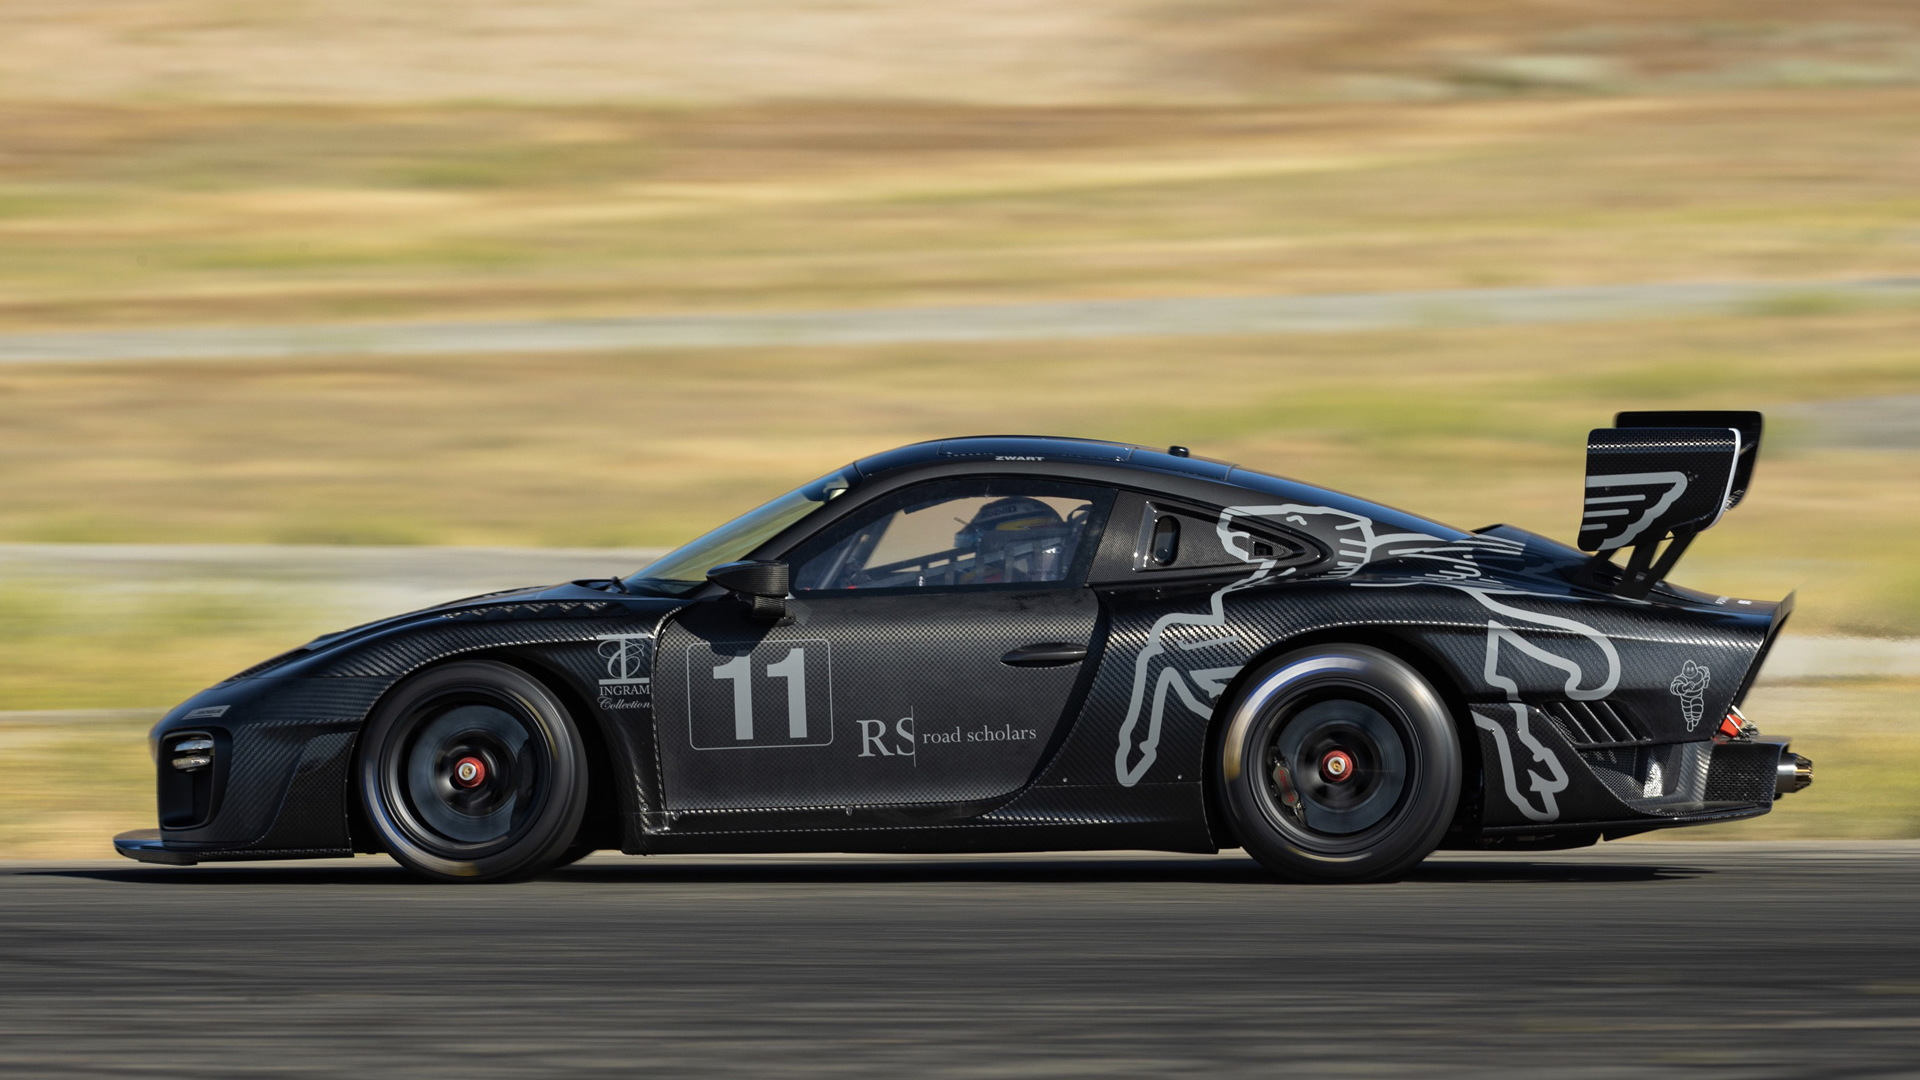 Jeff Zwart will race this Porsche 935 tribute in the 2020 Pikes Peak International Hill Climb